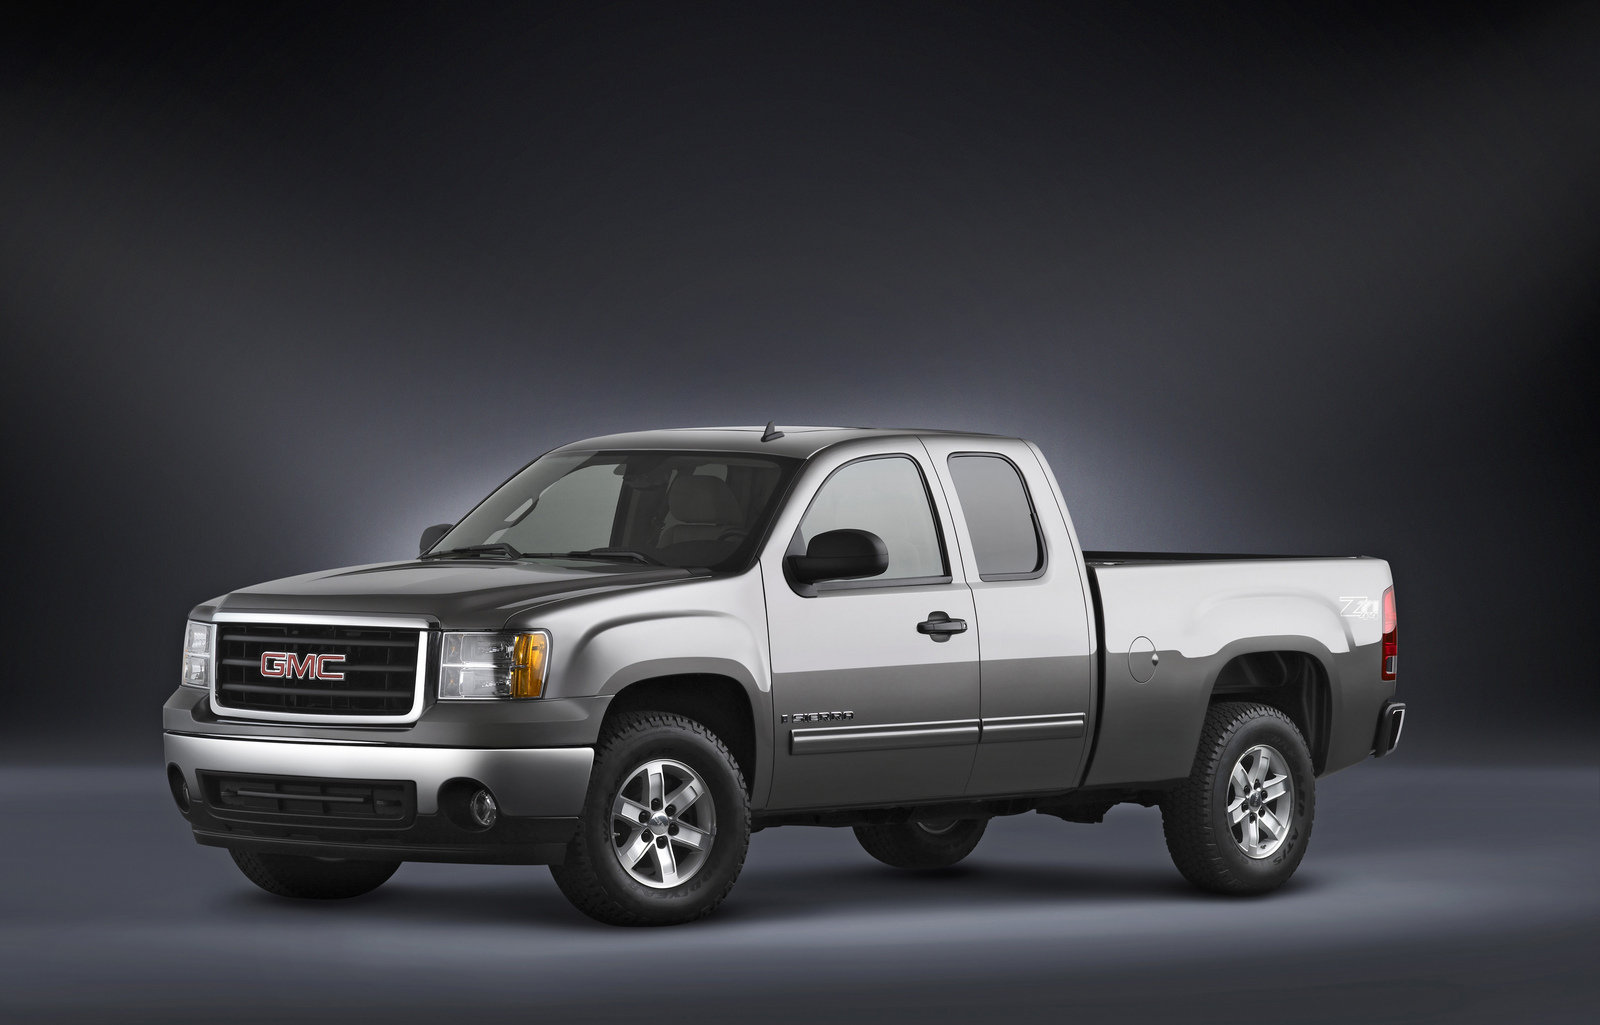 2007 gmc sierra picture 90586 car review top speed. Black Bedroom Furniture Sets. Home Design Ideas